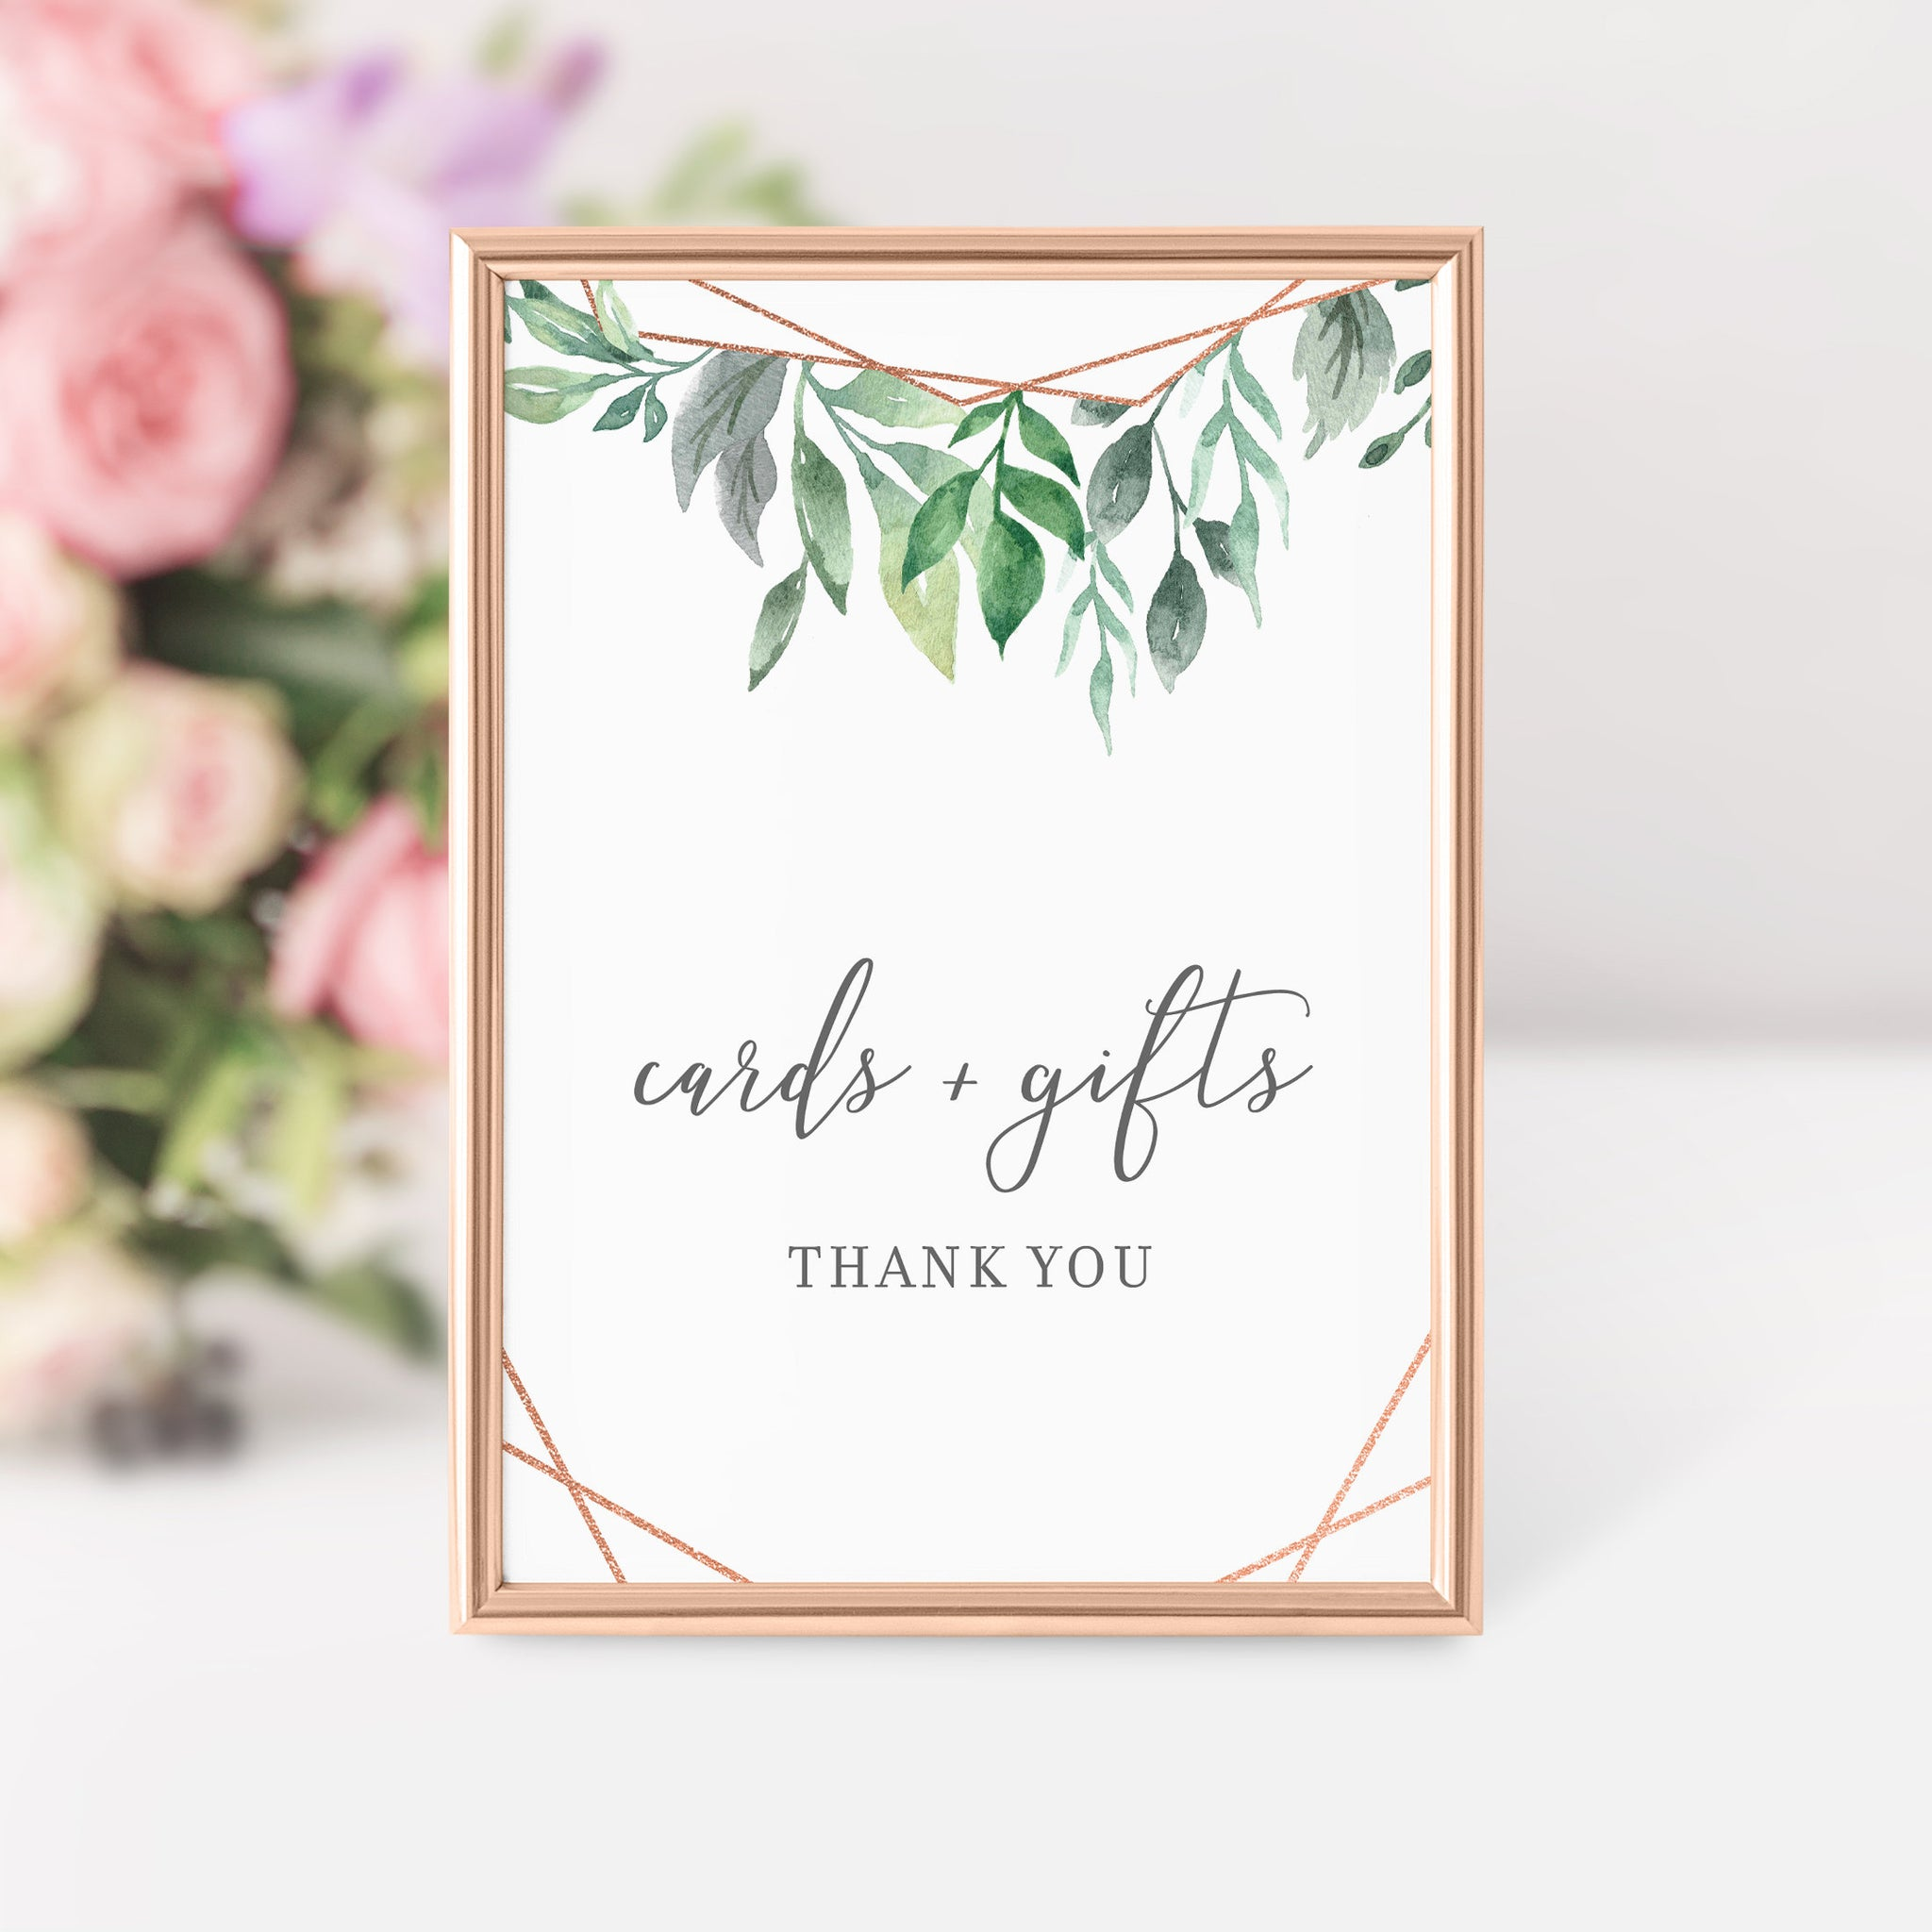 Geometric Rose Gold Greenery Cards and Gifts Printable Sign INSTANT DOWNLOAD, Bridal Shower, Baby Shower, Wedding Decorations - GFRG100